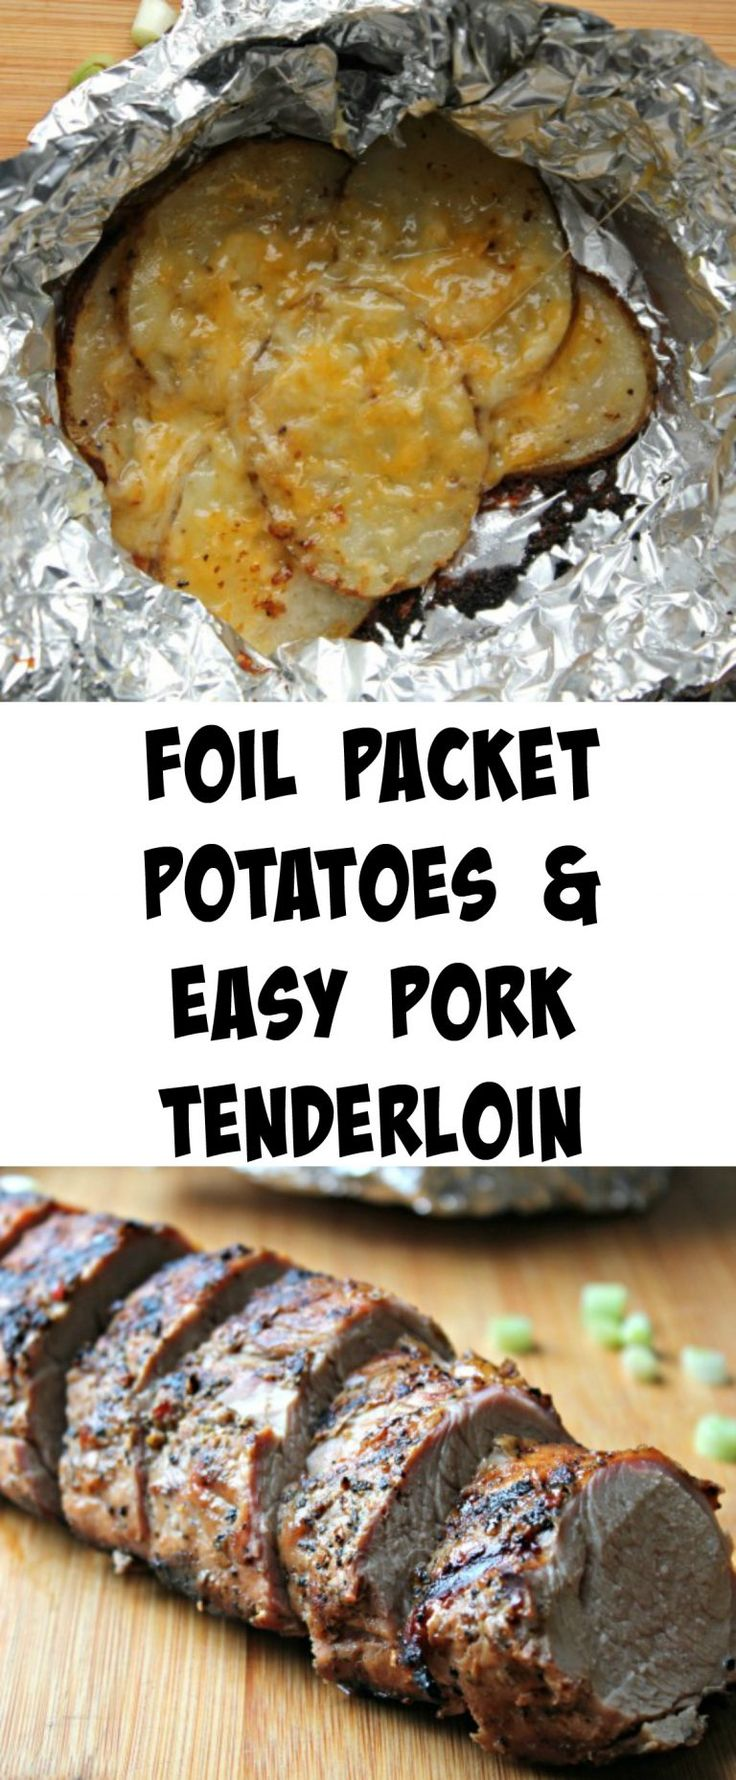 Grilling a meal has never been easier w/ these Foil Packet Potatoes w easy pork tenderloin!  The pork is already marinated so all you have to do is cook it.  Dinner ready in about 30 minutes!  #RealFlavorRealFast #ad @smithfieldfoods @walmart